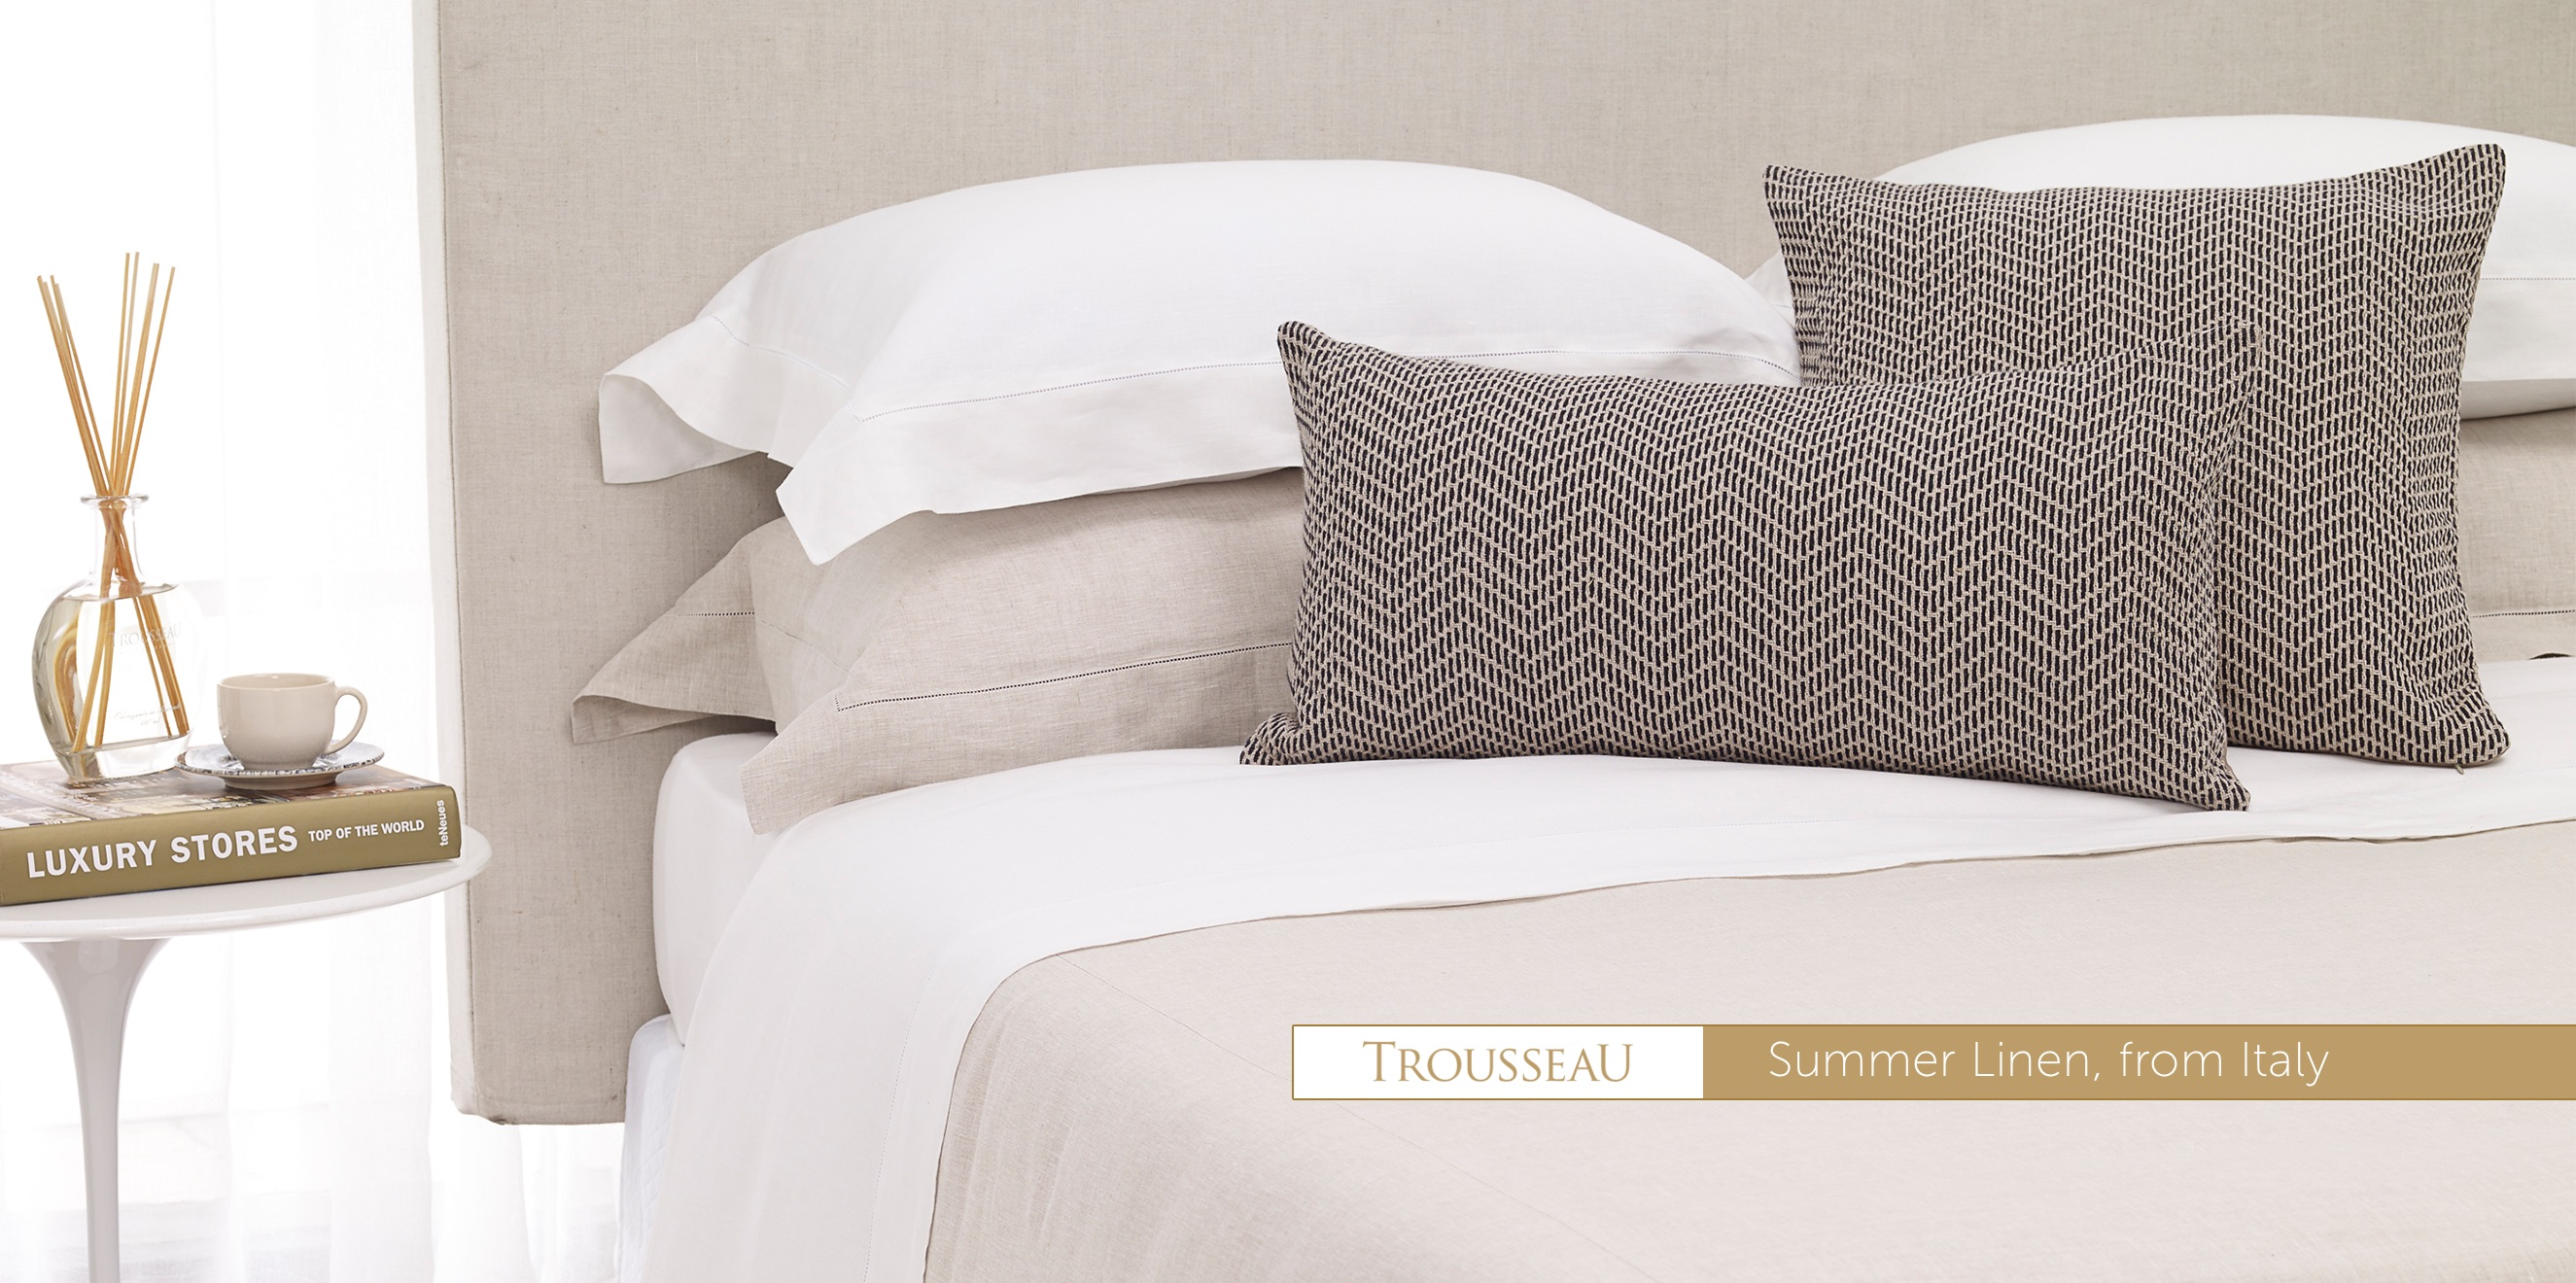 Luxurious linen from Italy